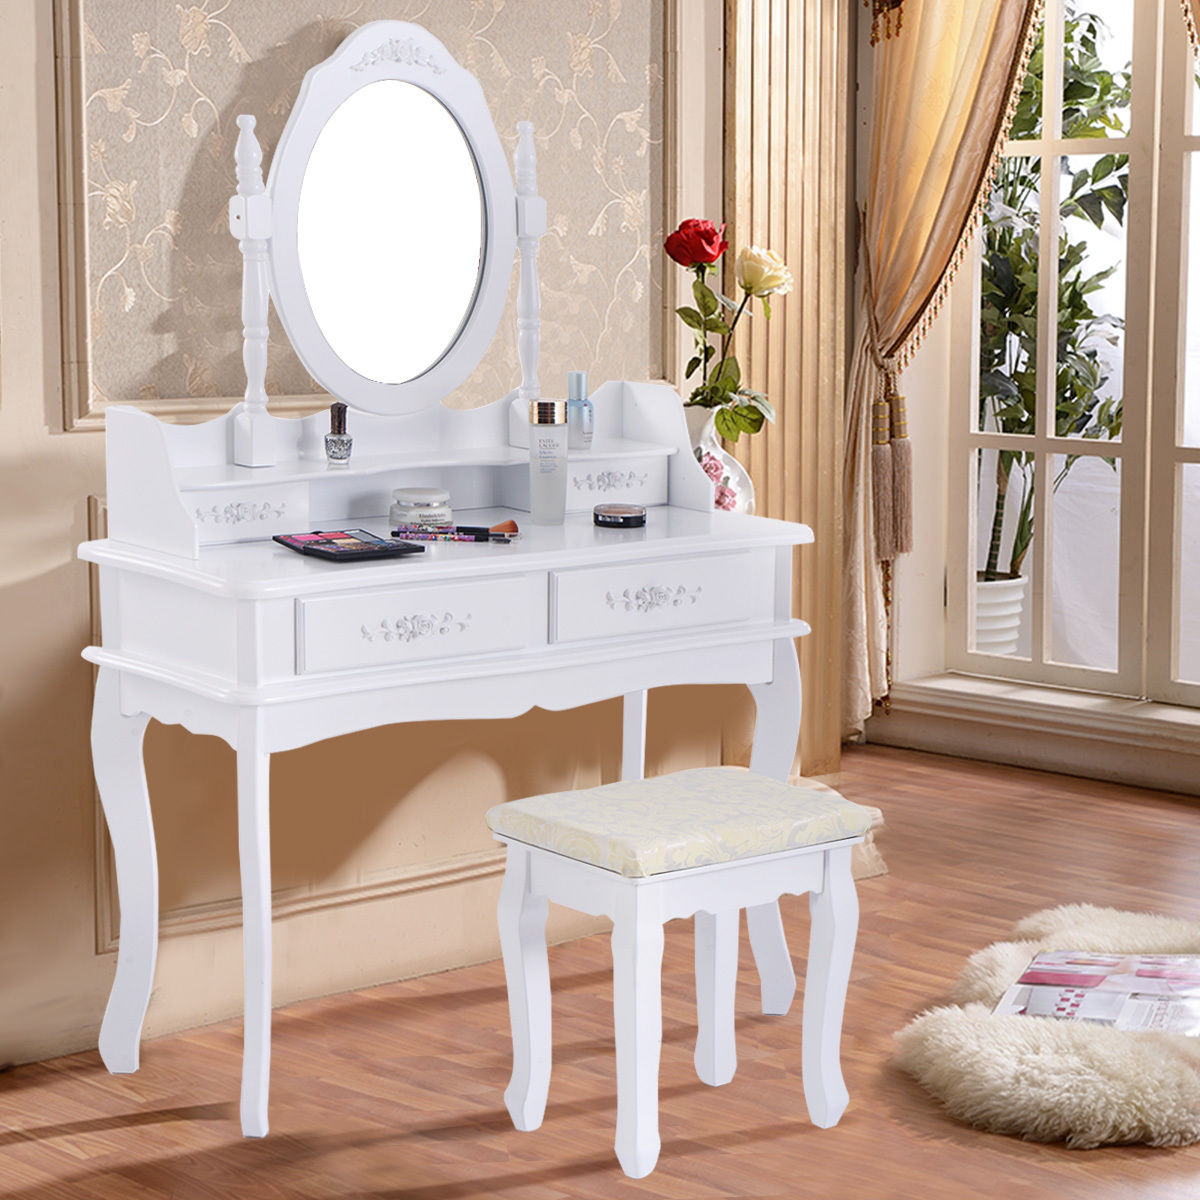 Costway White Vanity Jewelry Makeup Dressing Table Set bathroom W/Stool 4 Drawer Mirror Wood Desk - Walmart.com & Costway White Vanity Jewelry Makeup Dressing Table Set bathroom W ...